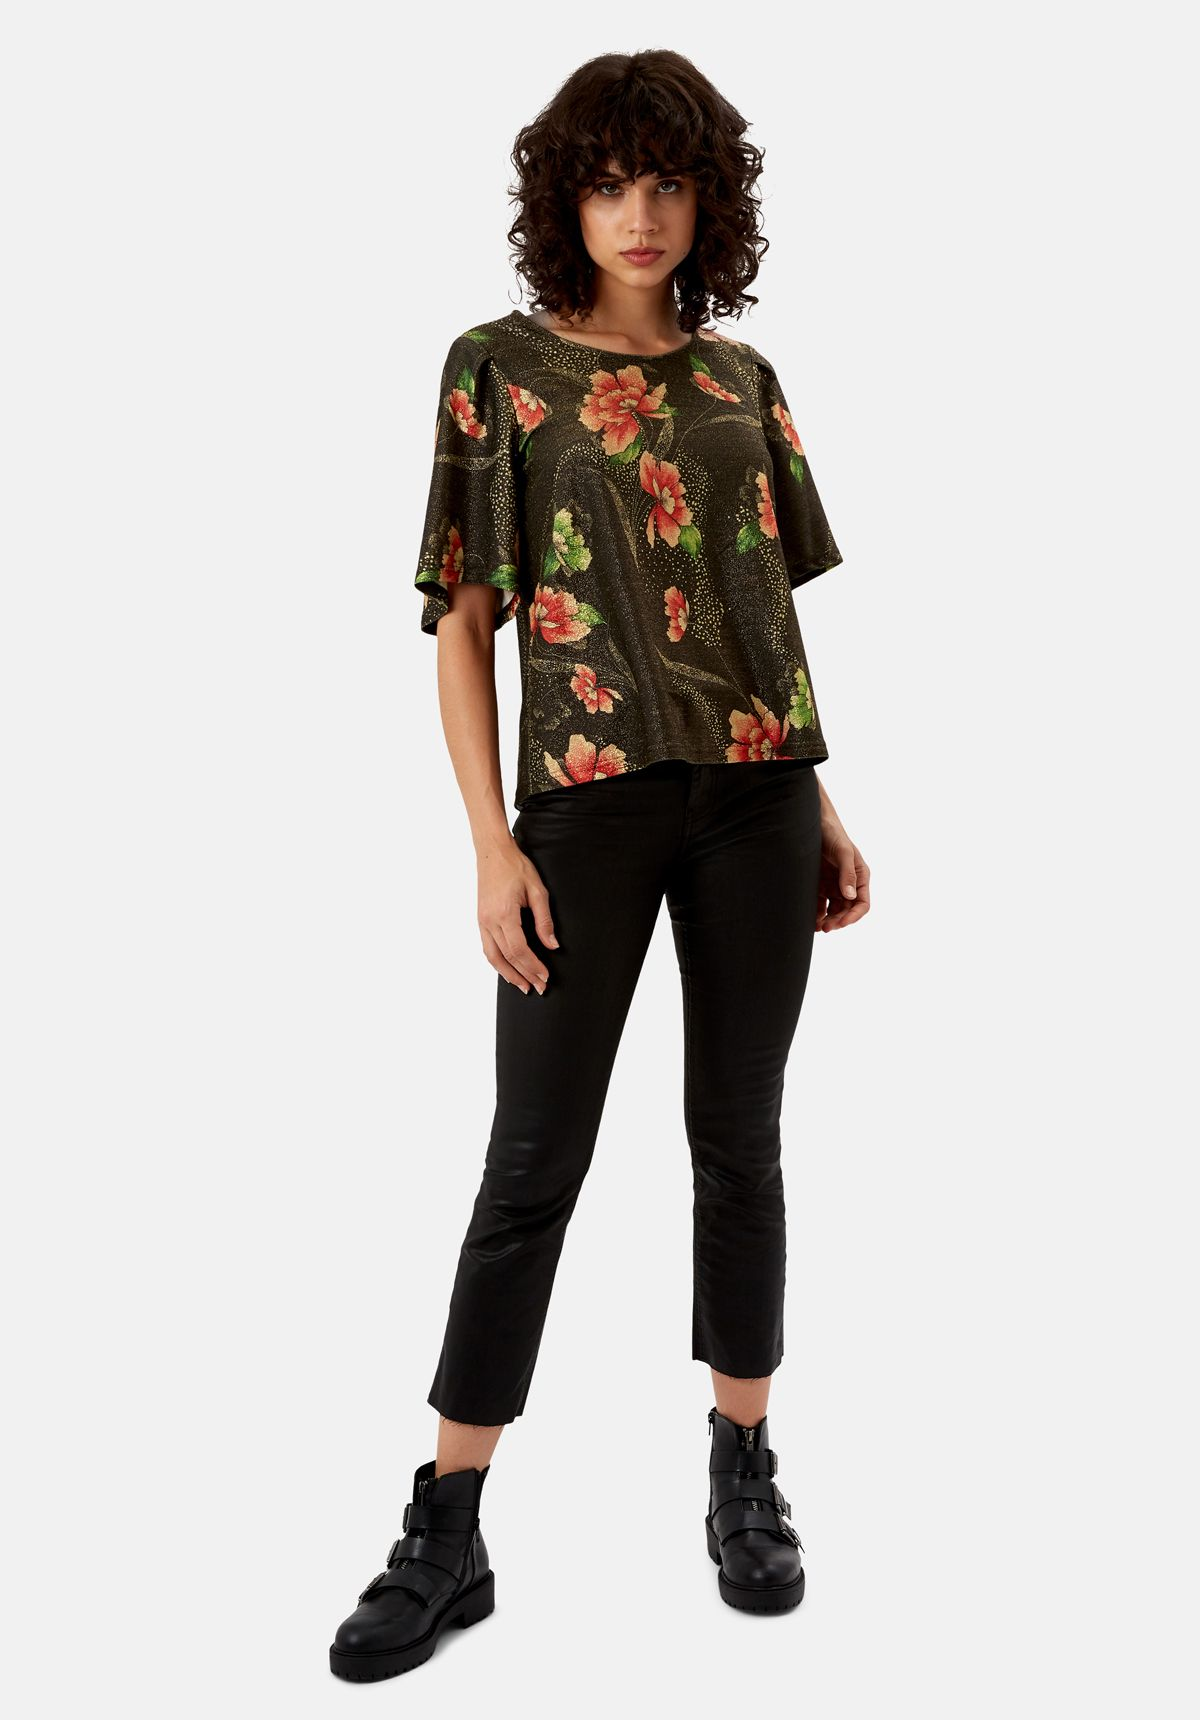 Eunice's Closet Floral Whisper Top in Brown